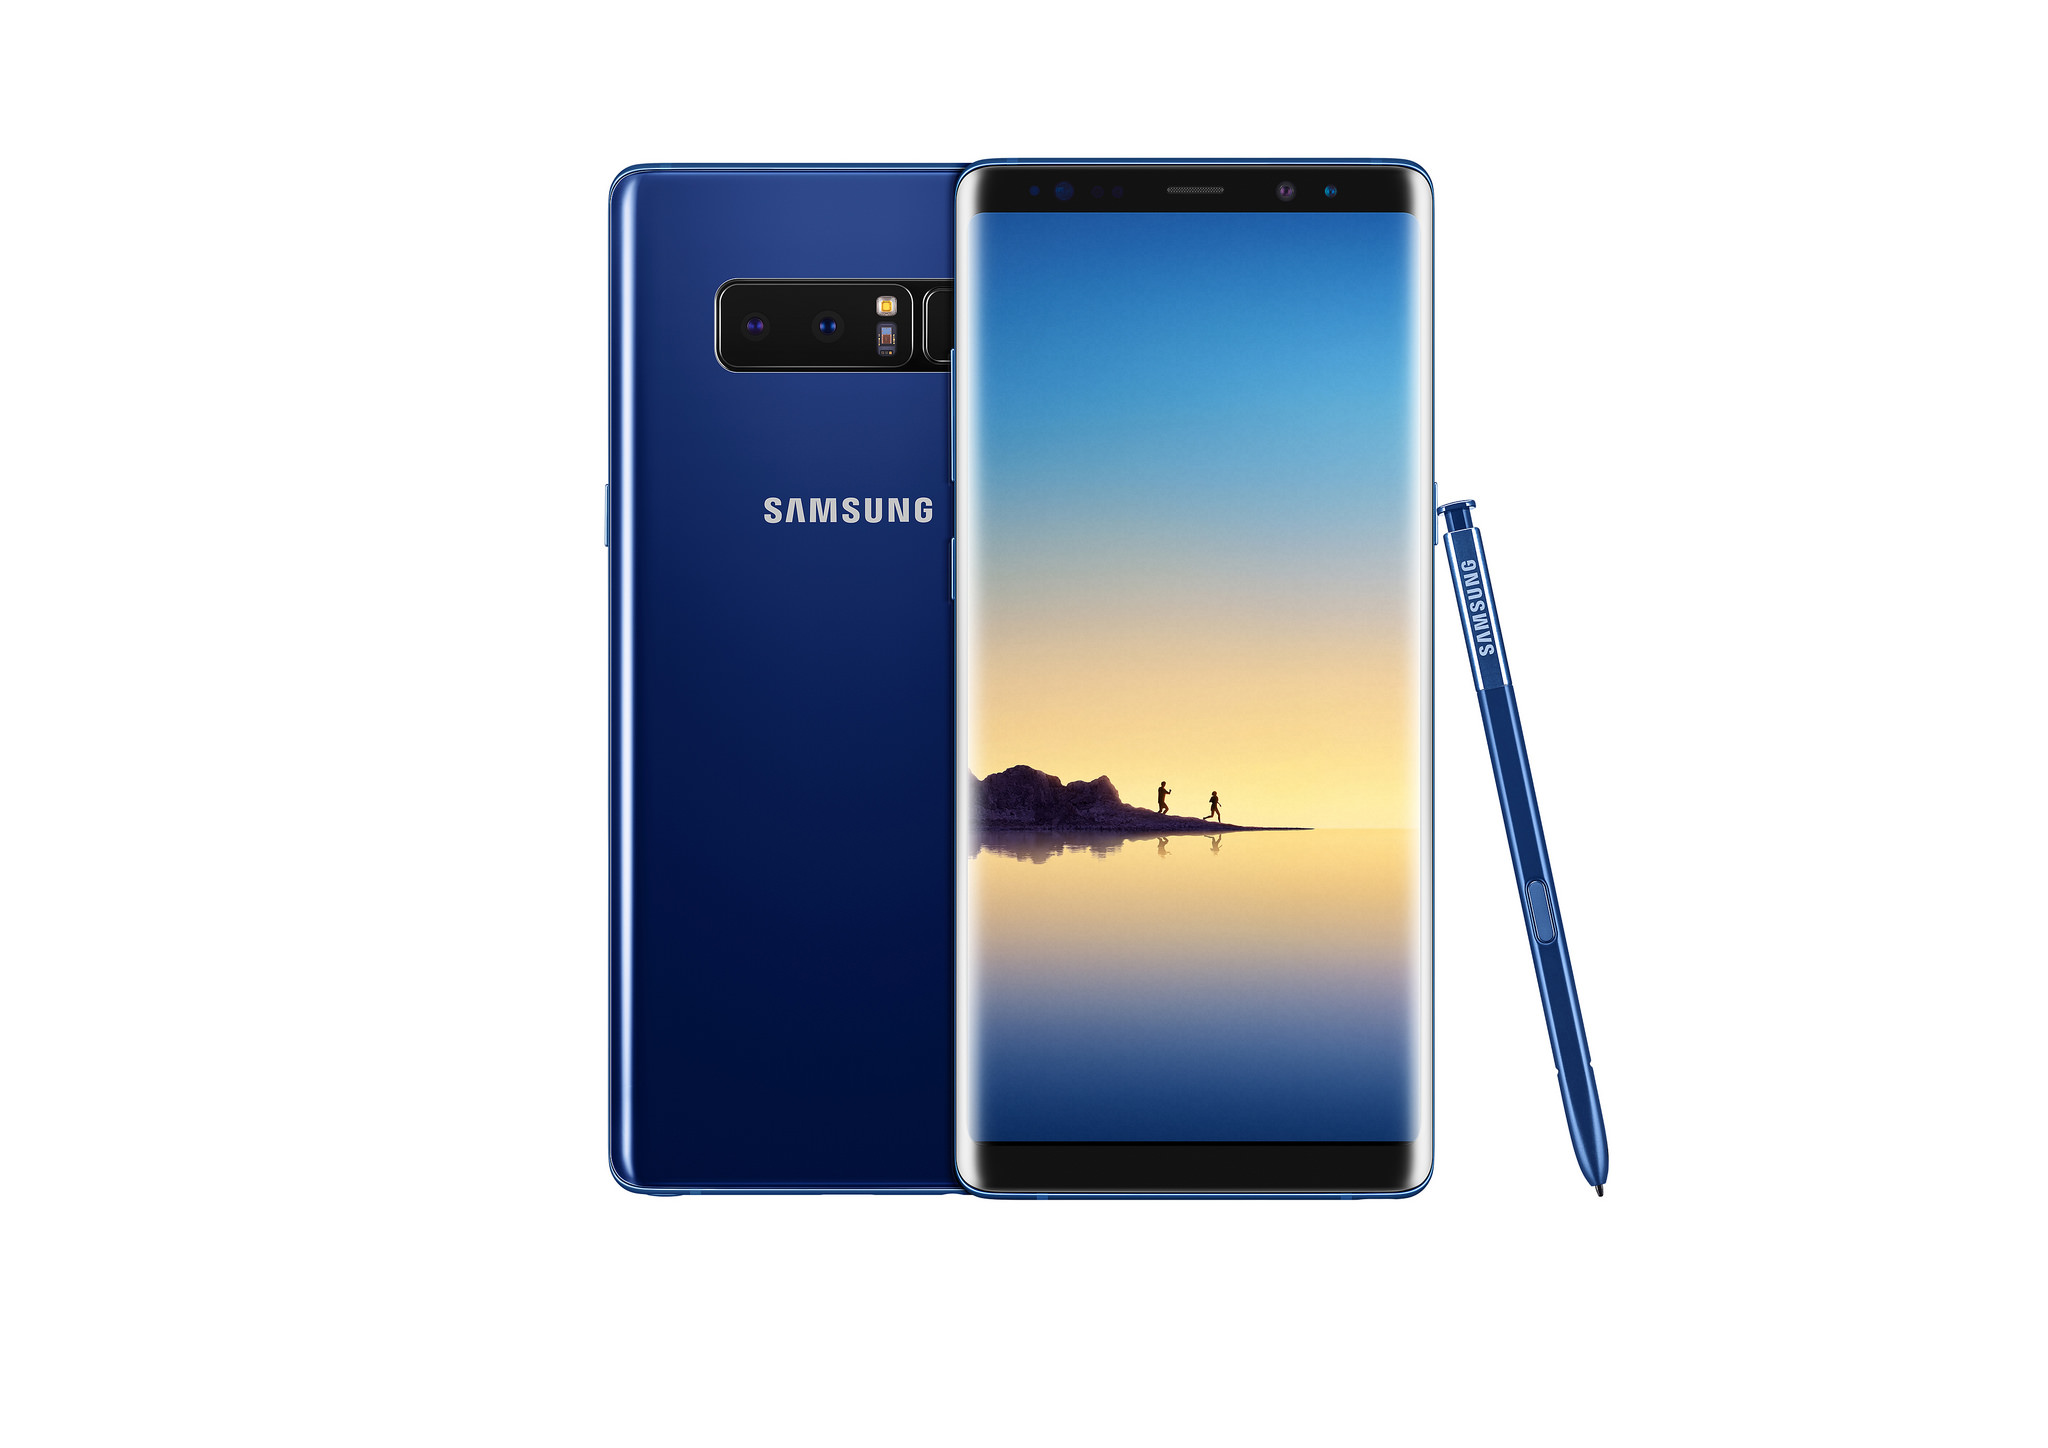 Unlock Samsung Galaxy Note 8 - Methods